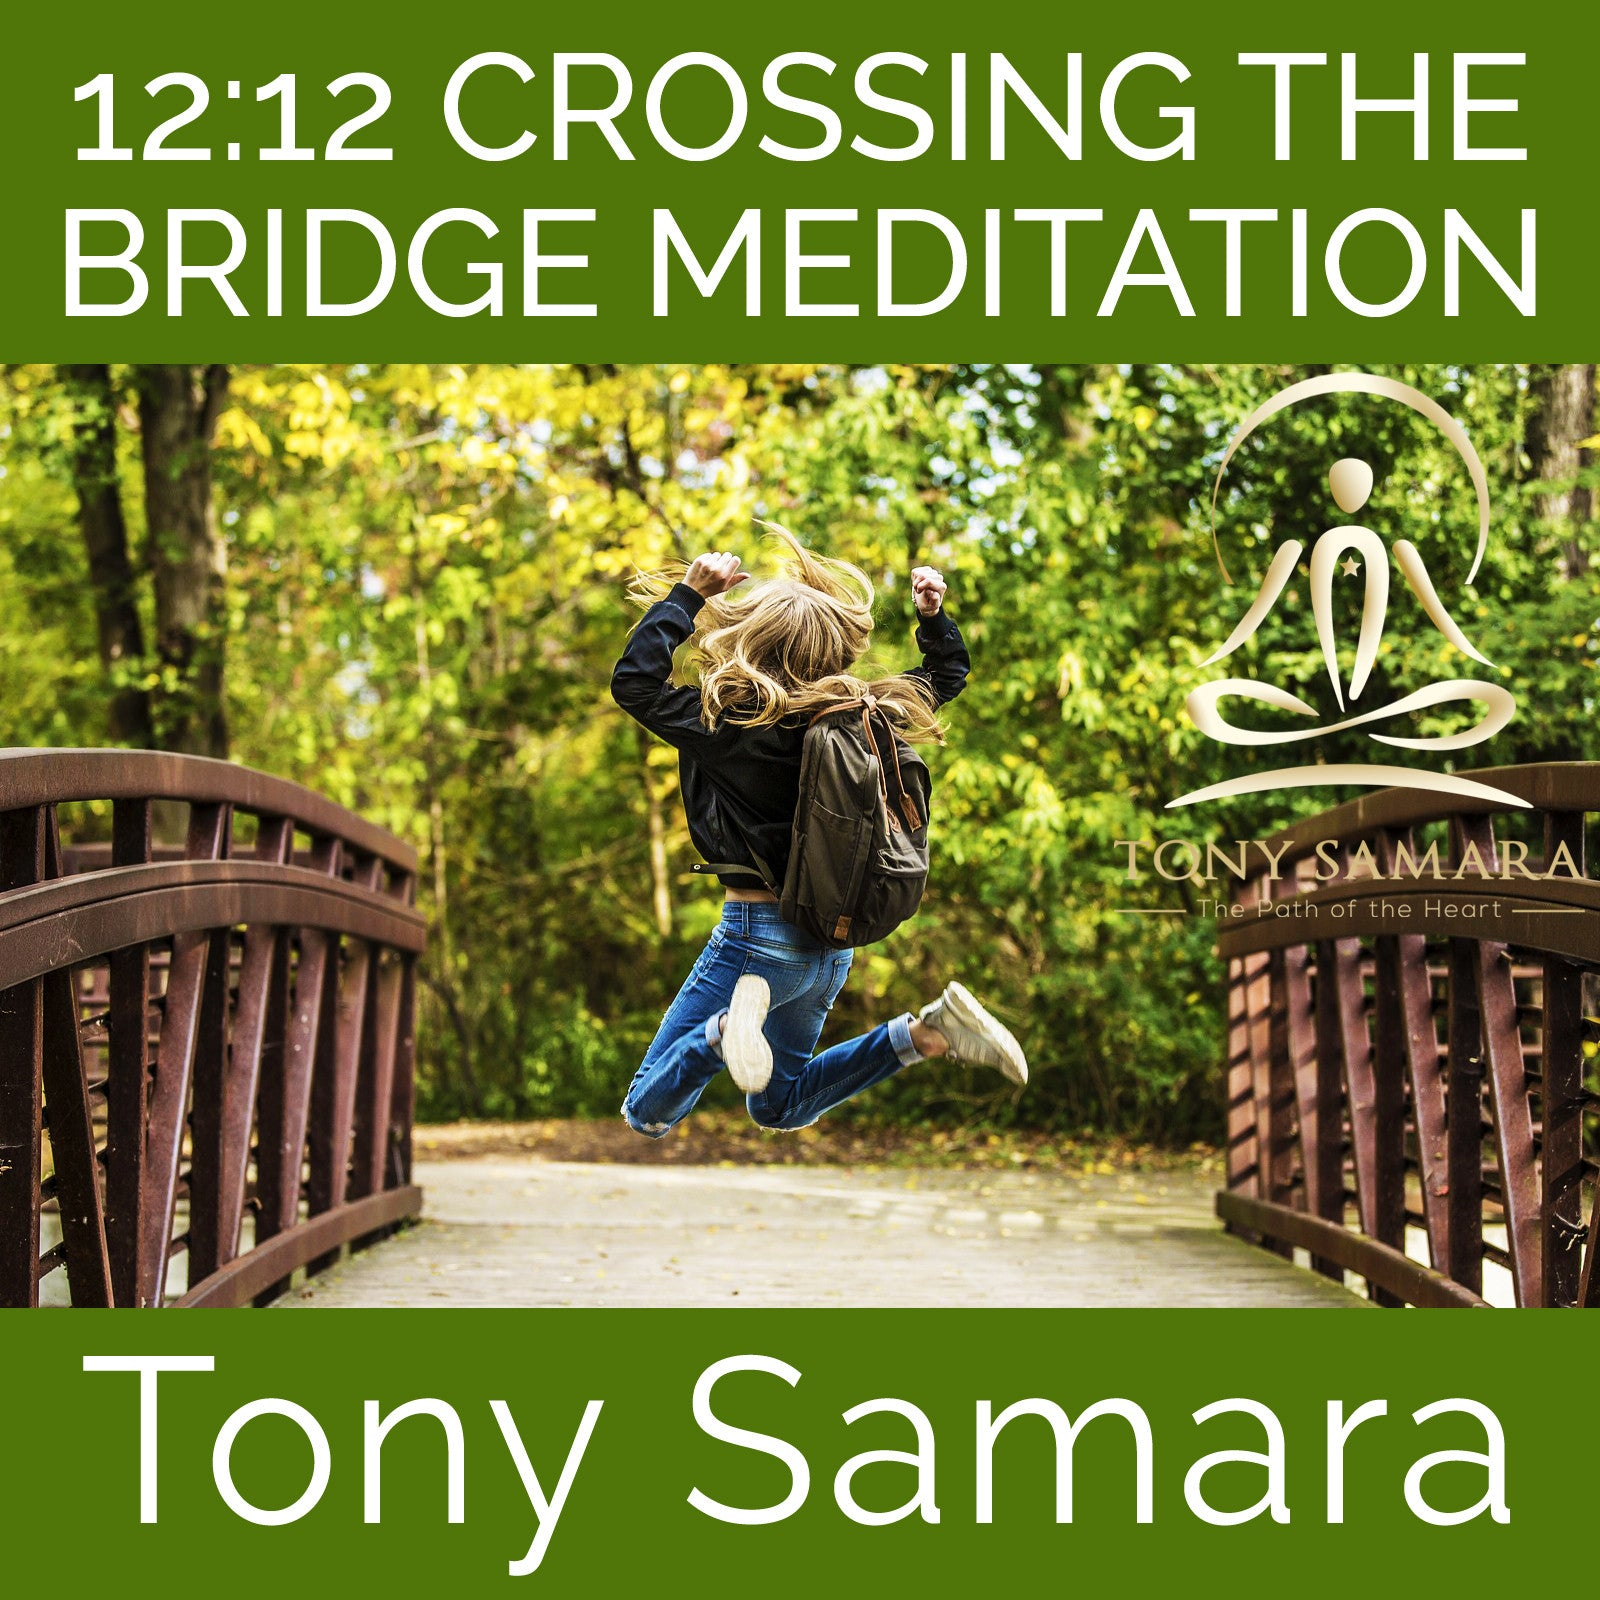 12:12 Crossing the Bridge Meditation (MP3 Audio Download) - Tony Samara Meditation